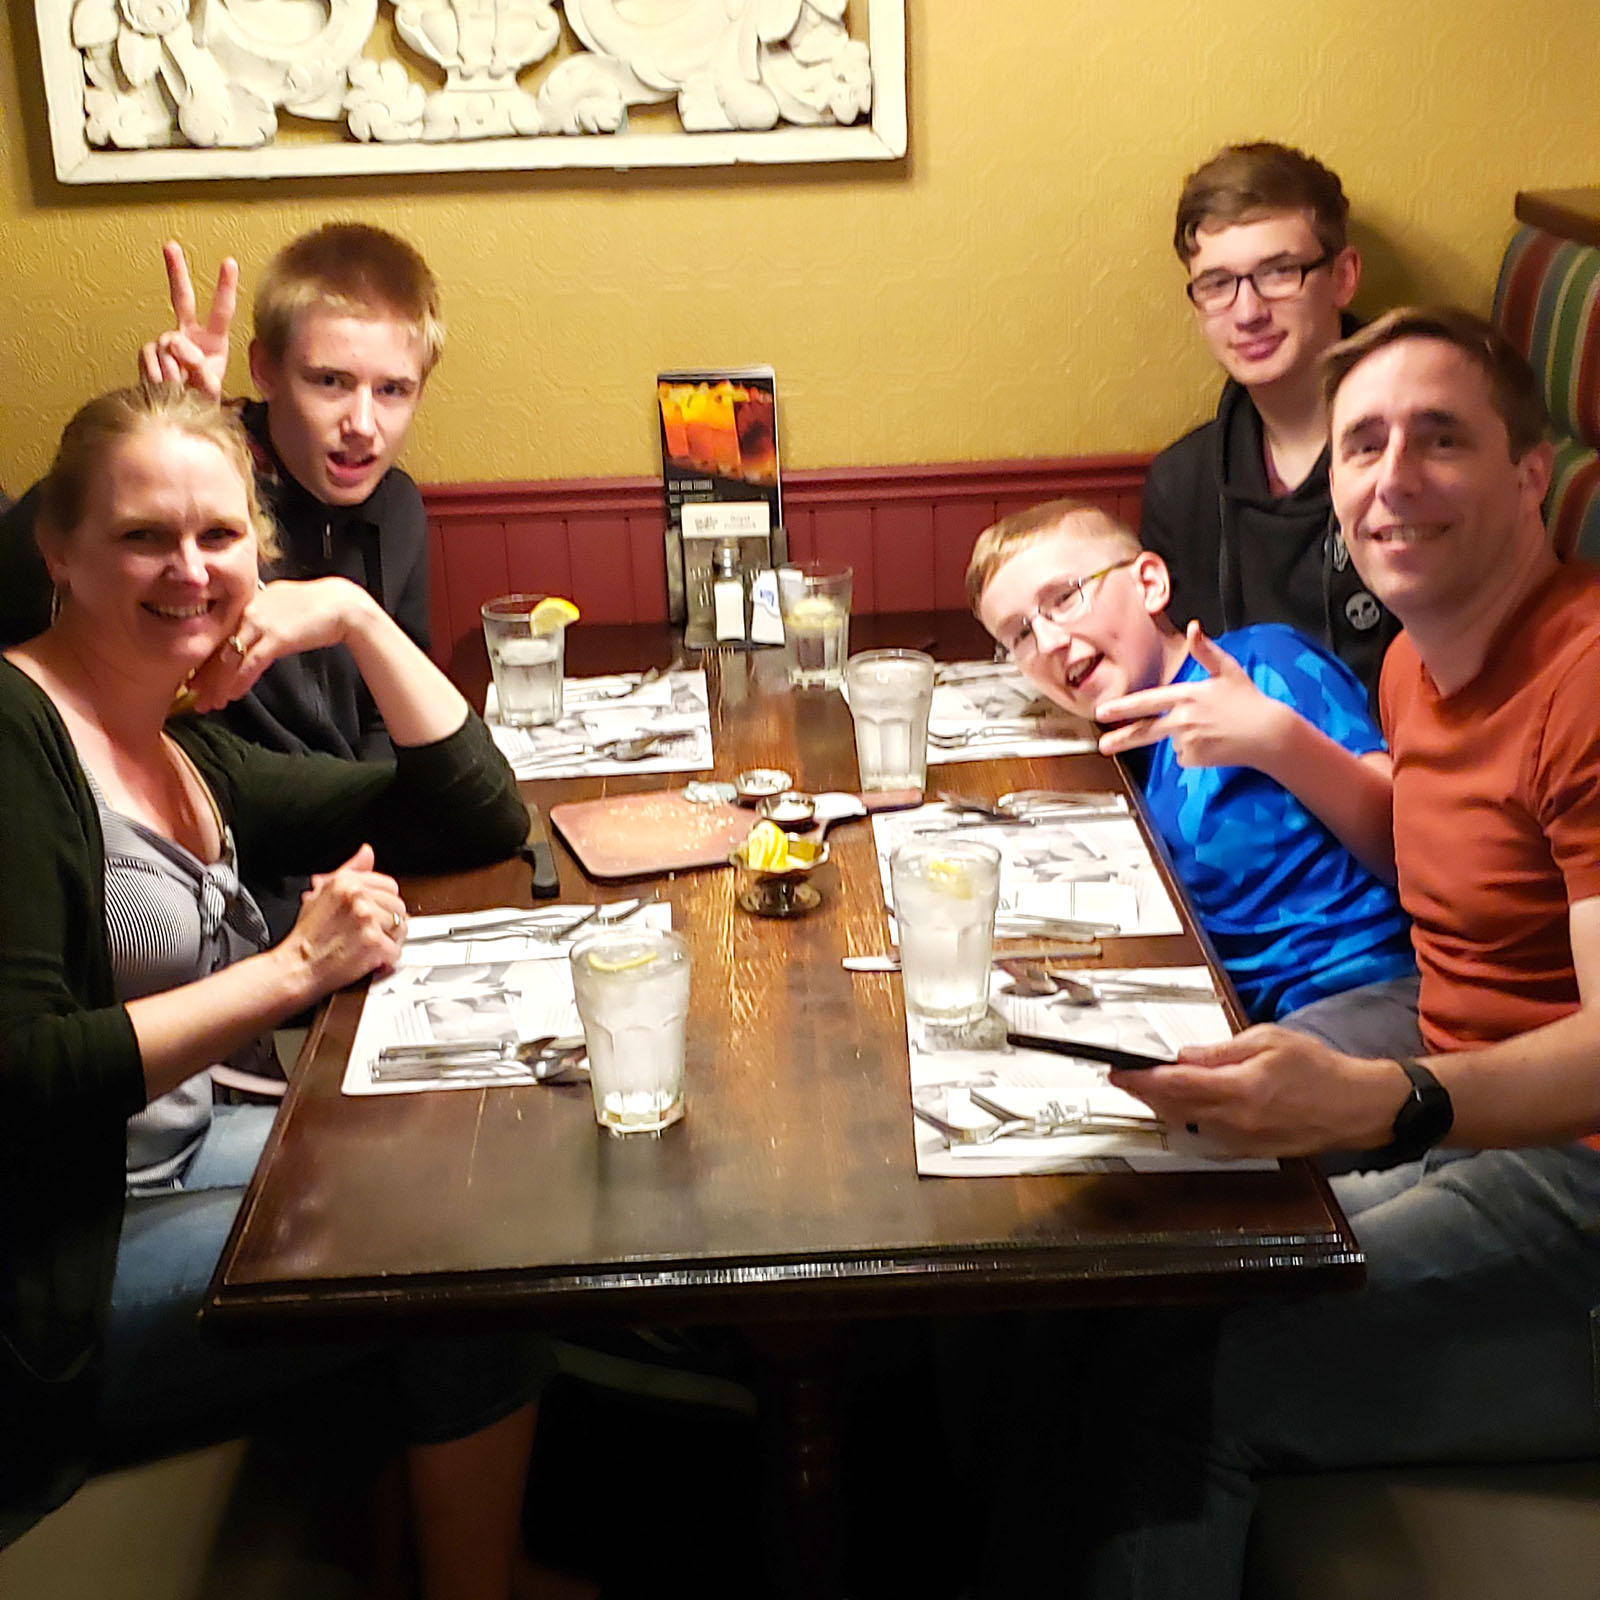 Enjoying supper at the Old Spaghetti Factory in West Edmonton Mall.